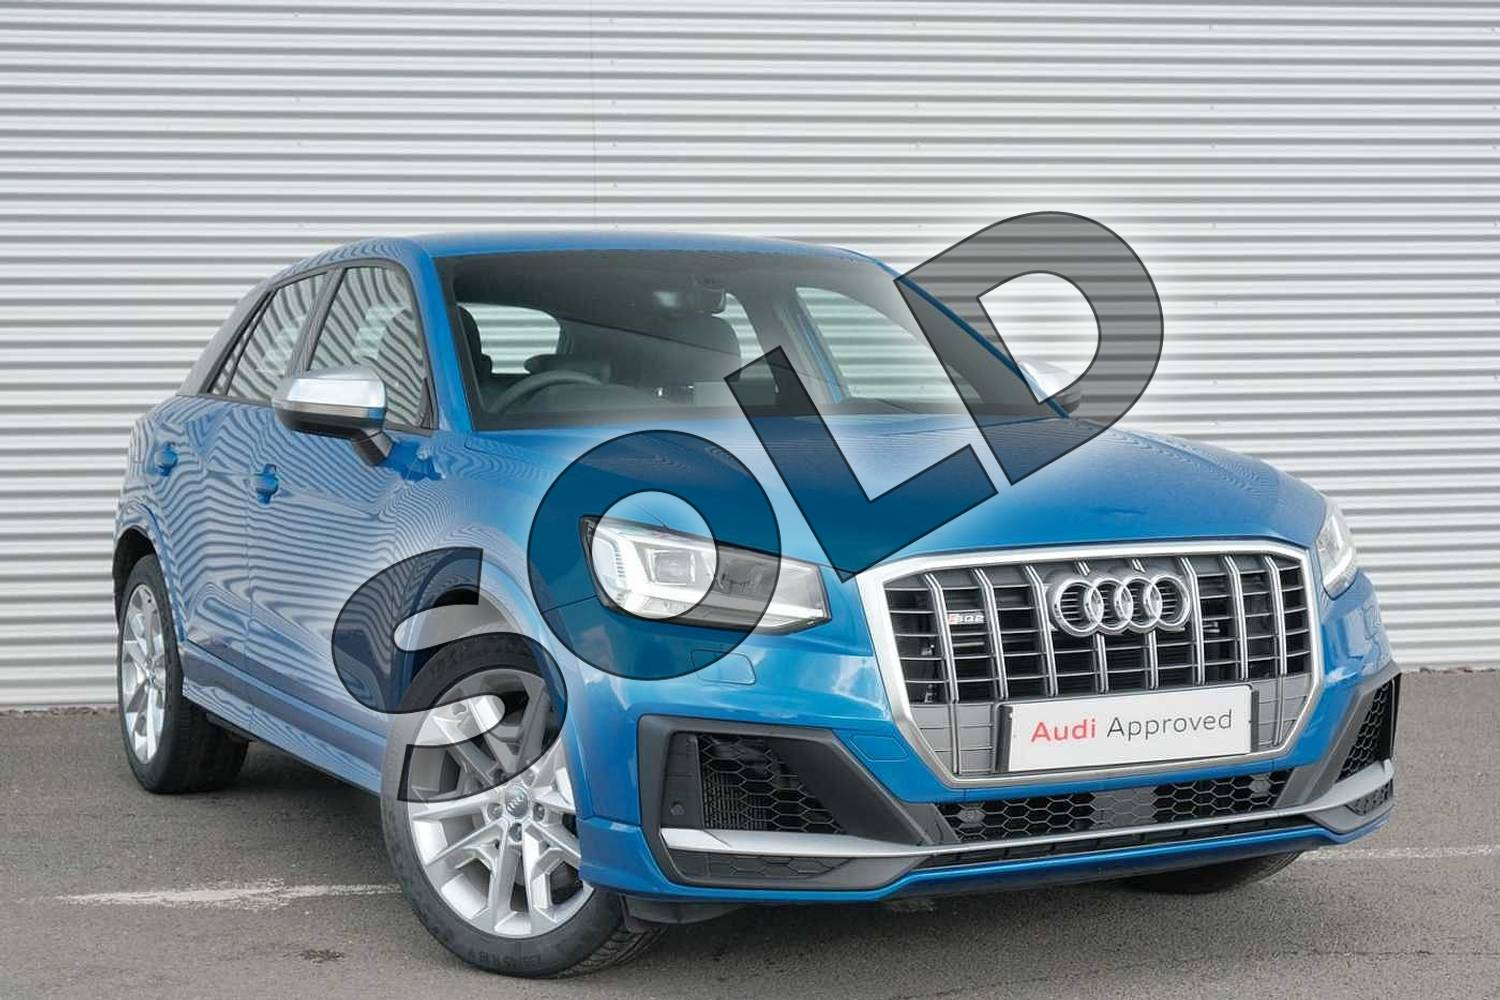 2020 Audi Q2 Estate SQ2 Quattro 5dr S Tronic in Ara Blue Crystal Effect at Coventry Audi